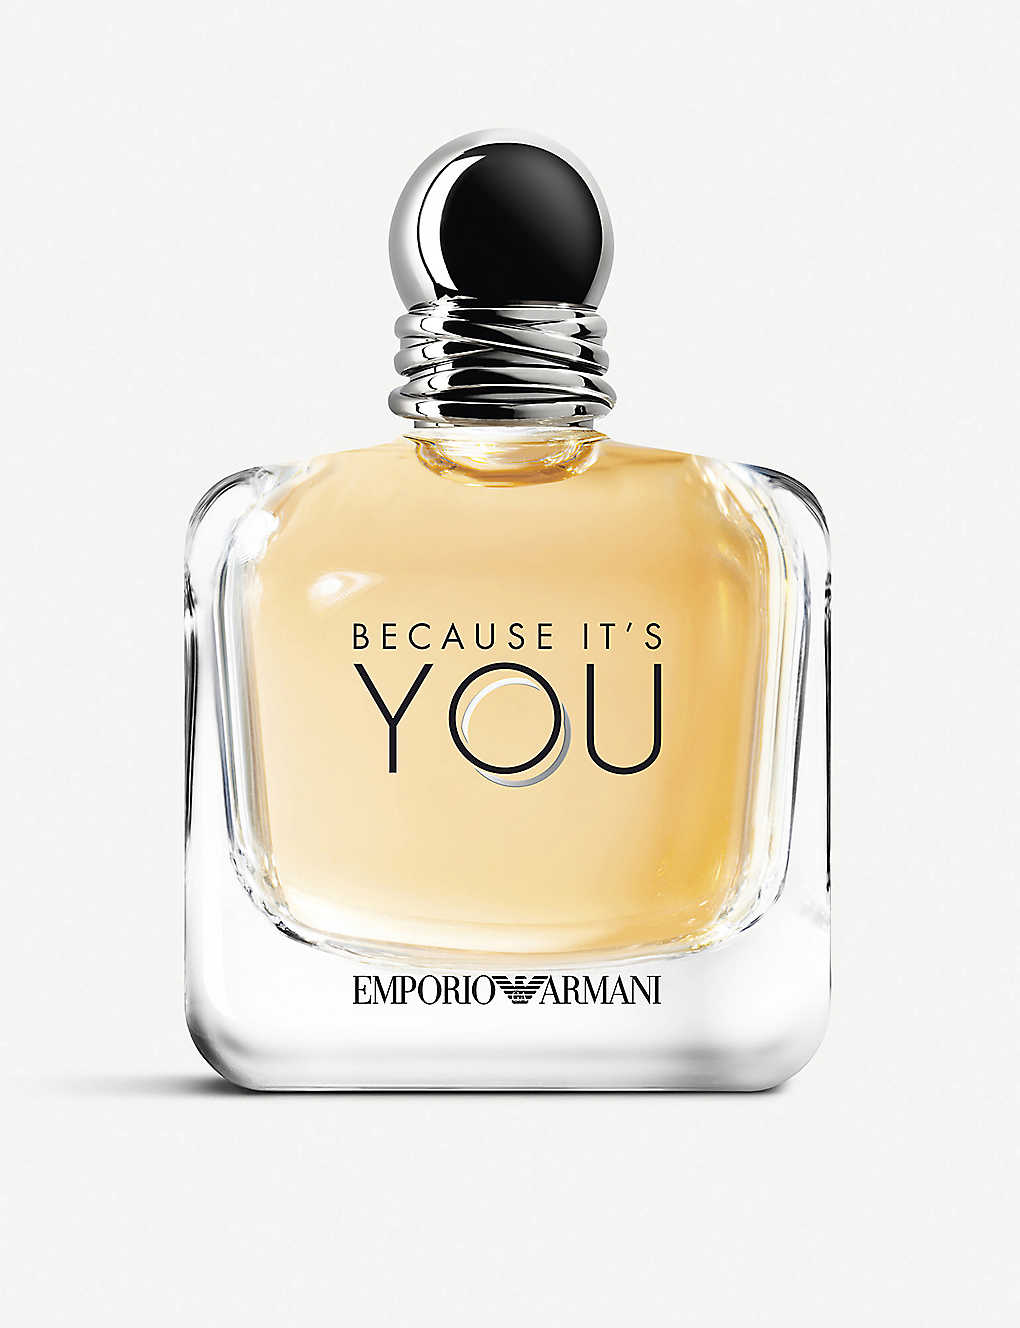 EMPORIO ARMANI: Because It's You eau de parfum 150ml